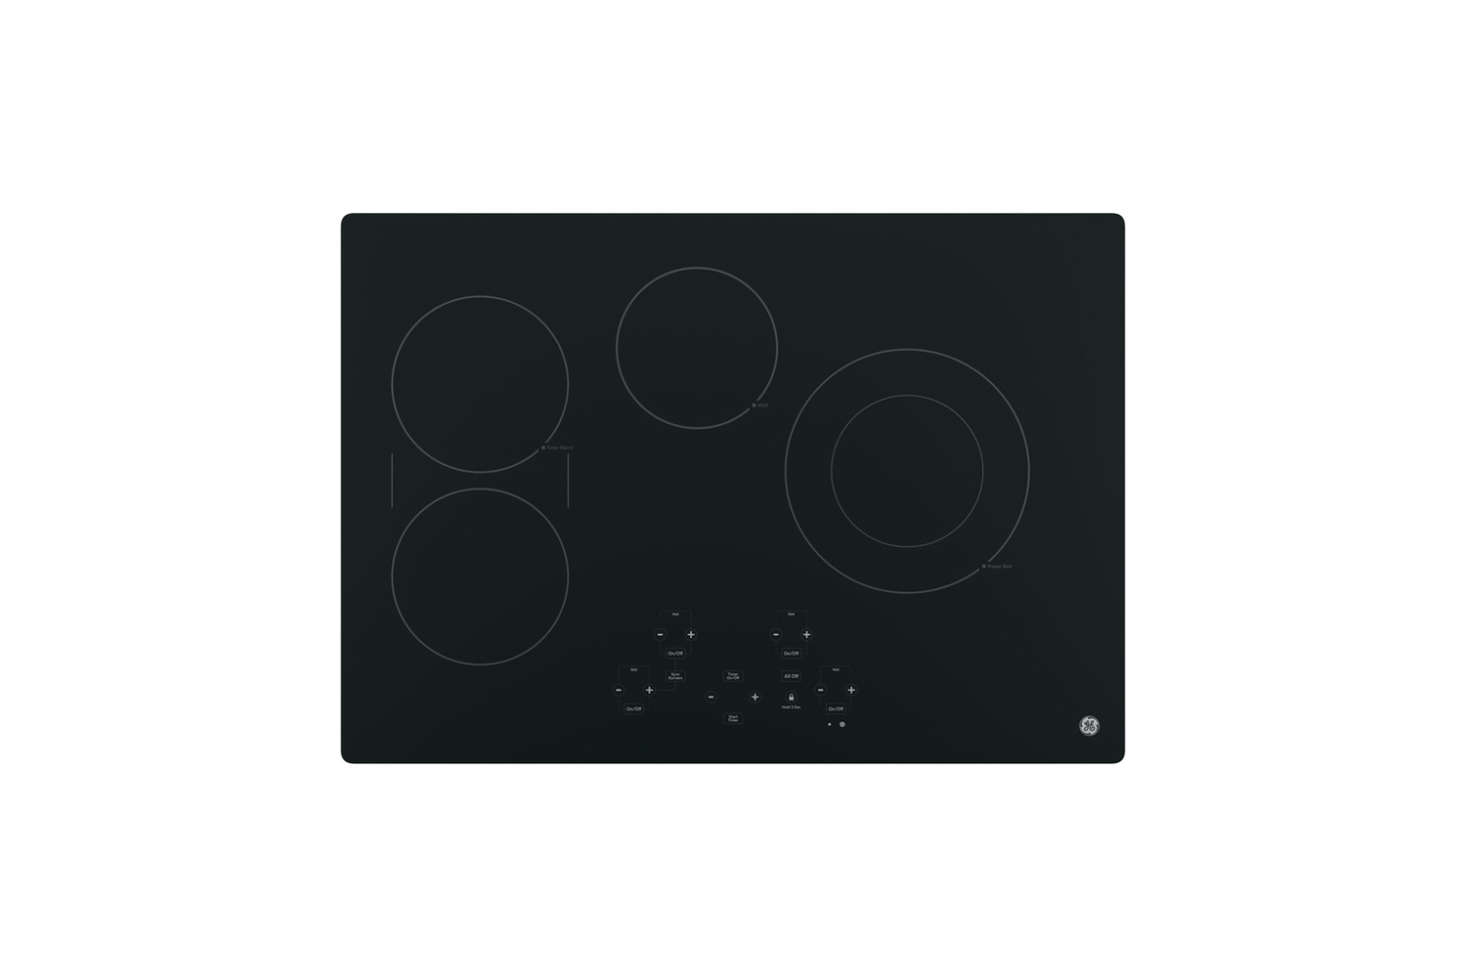 Most of the kitchen appliances are integrated behind cabinet panels. The GE 30-Inch Profile Smooth Surface Electric Cooktop is similar to the cooktop Caroline and Steffan chose. It&#8